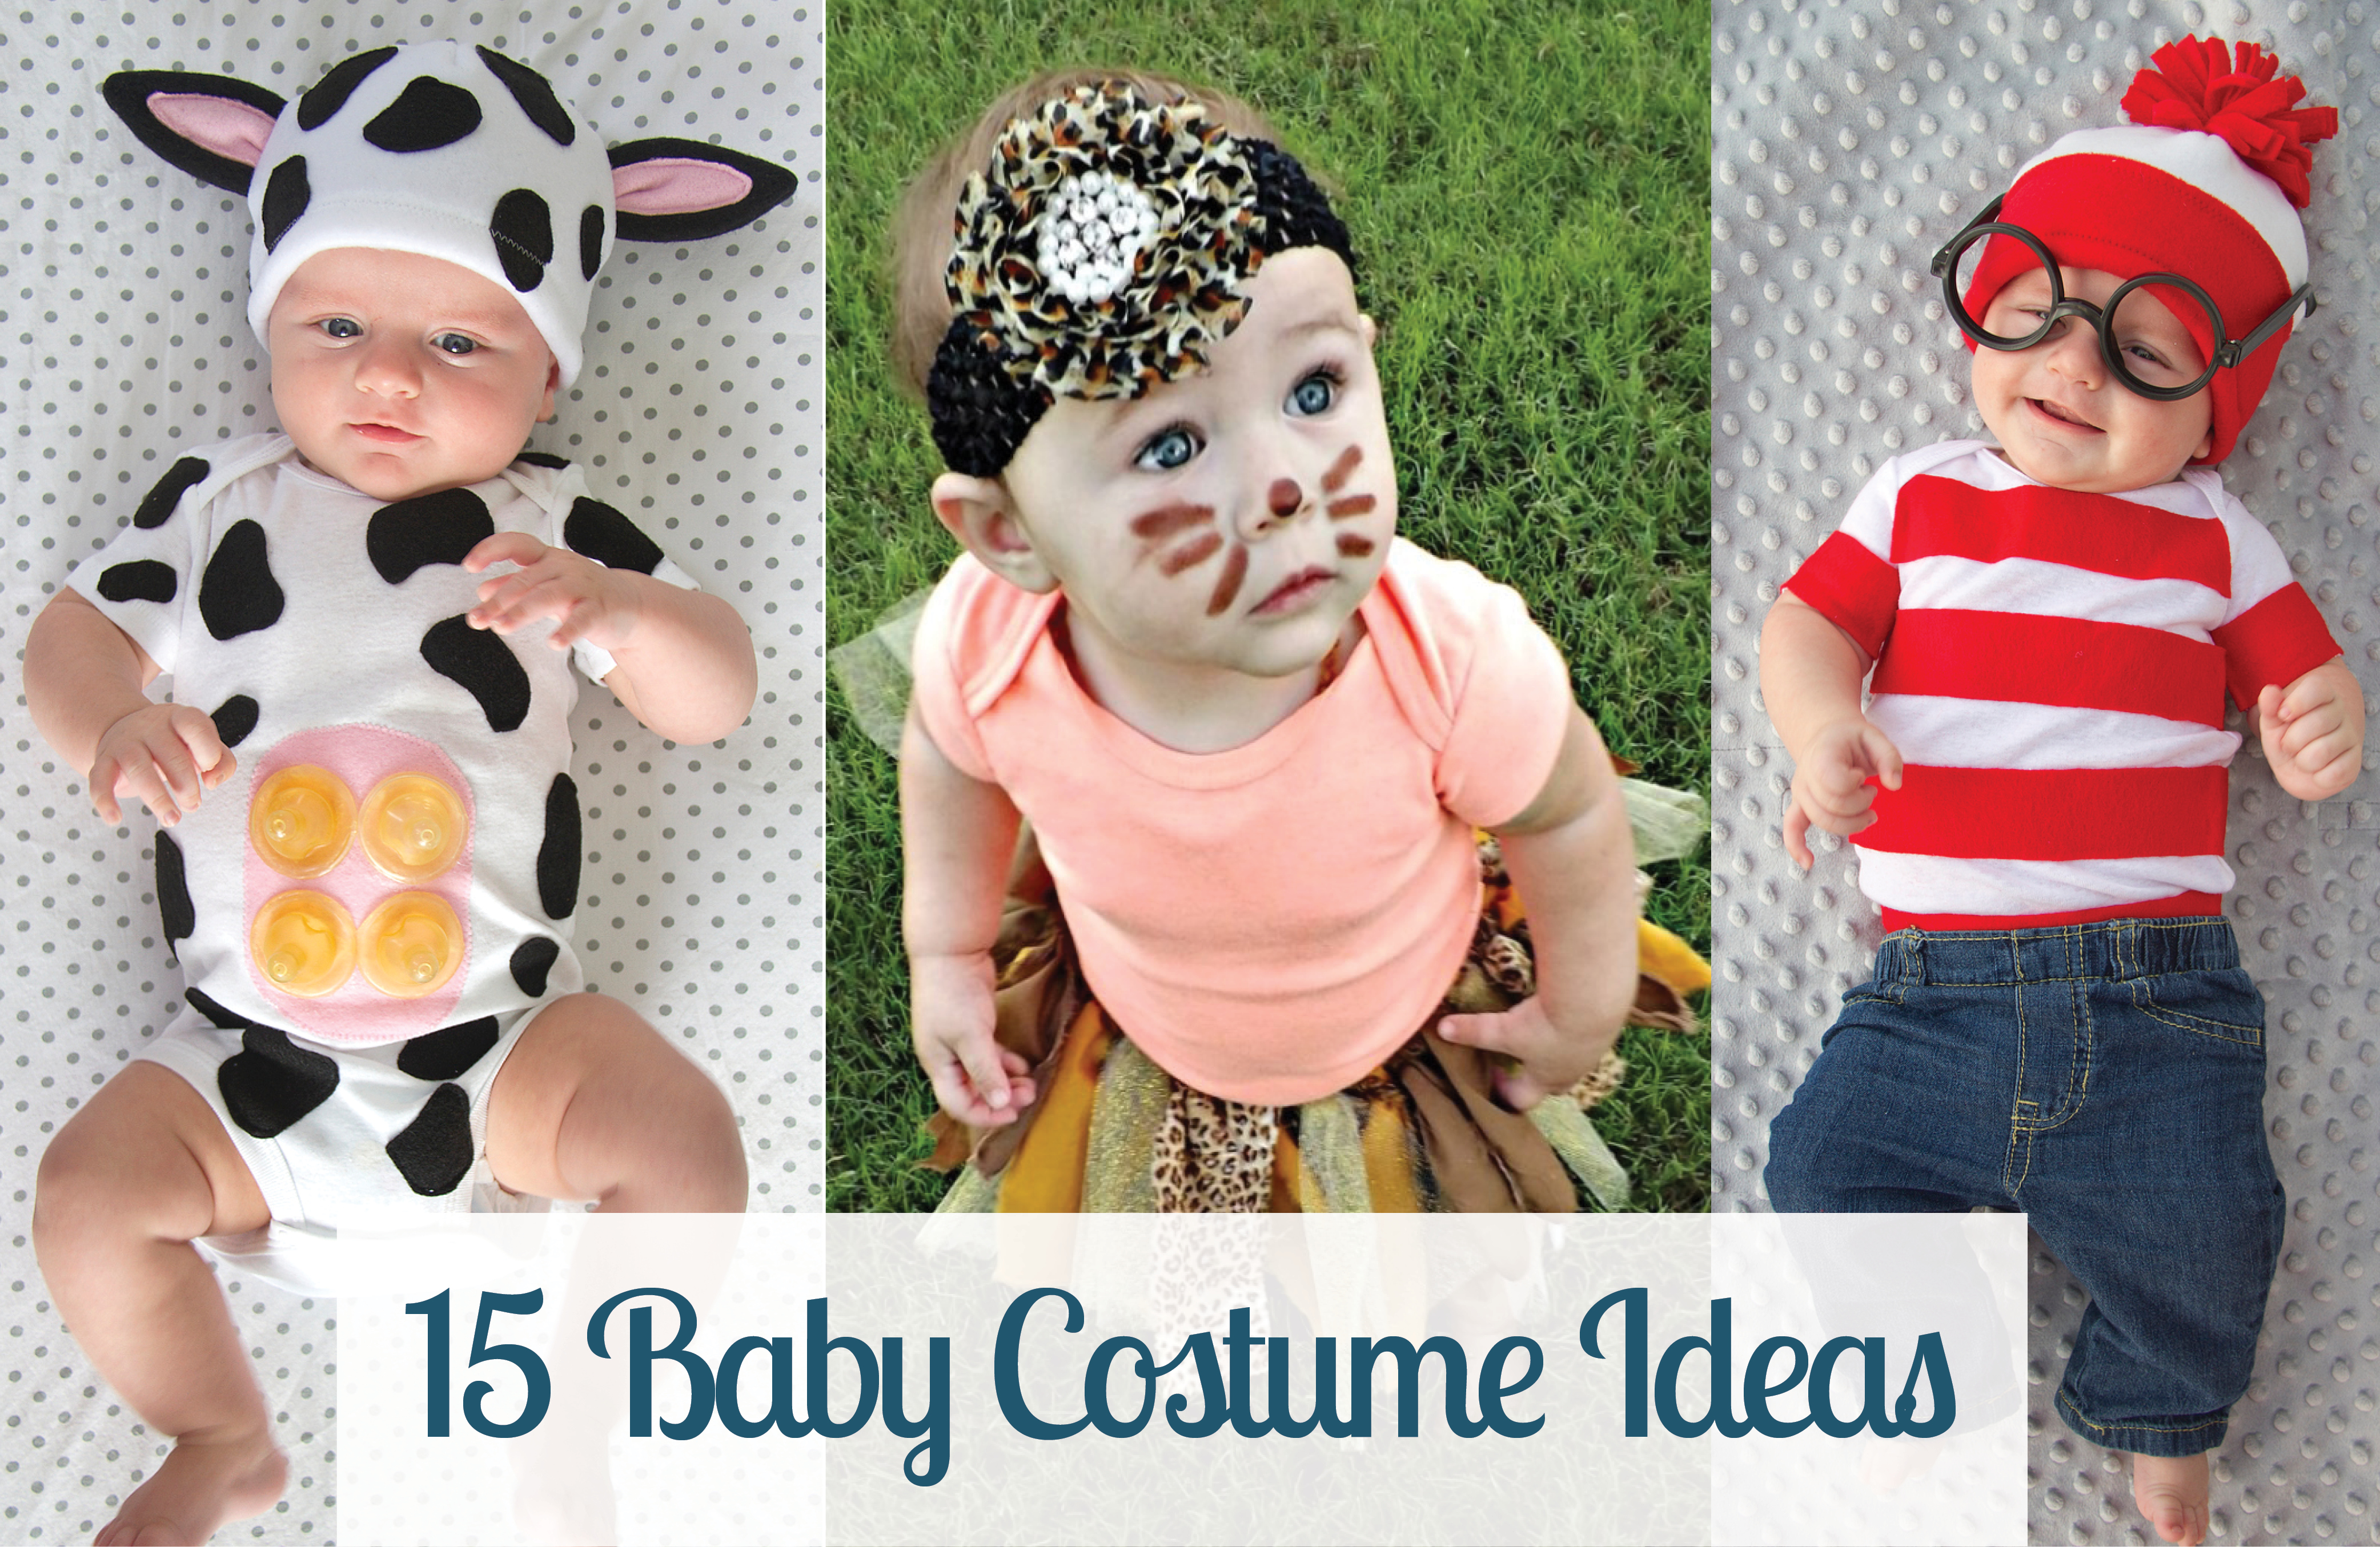 Love Cute Baby Costumes Many Good Homemade